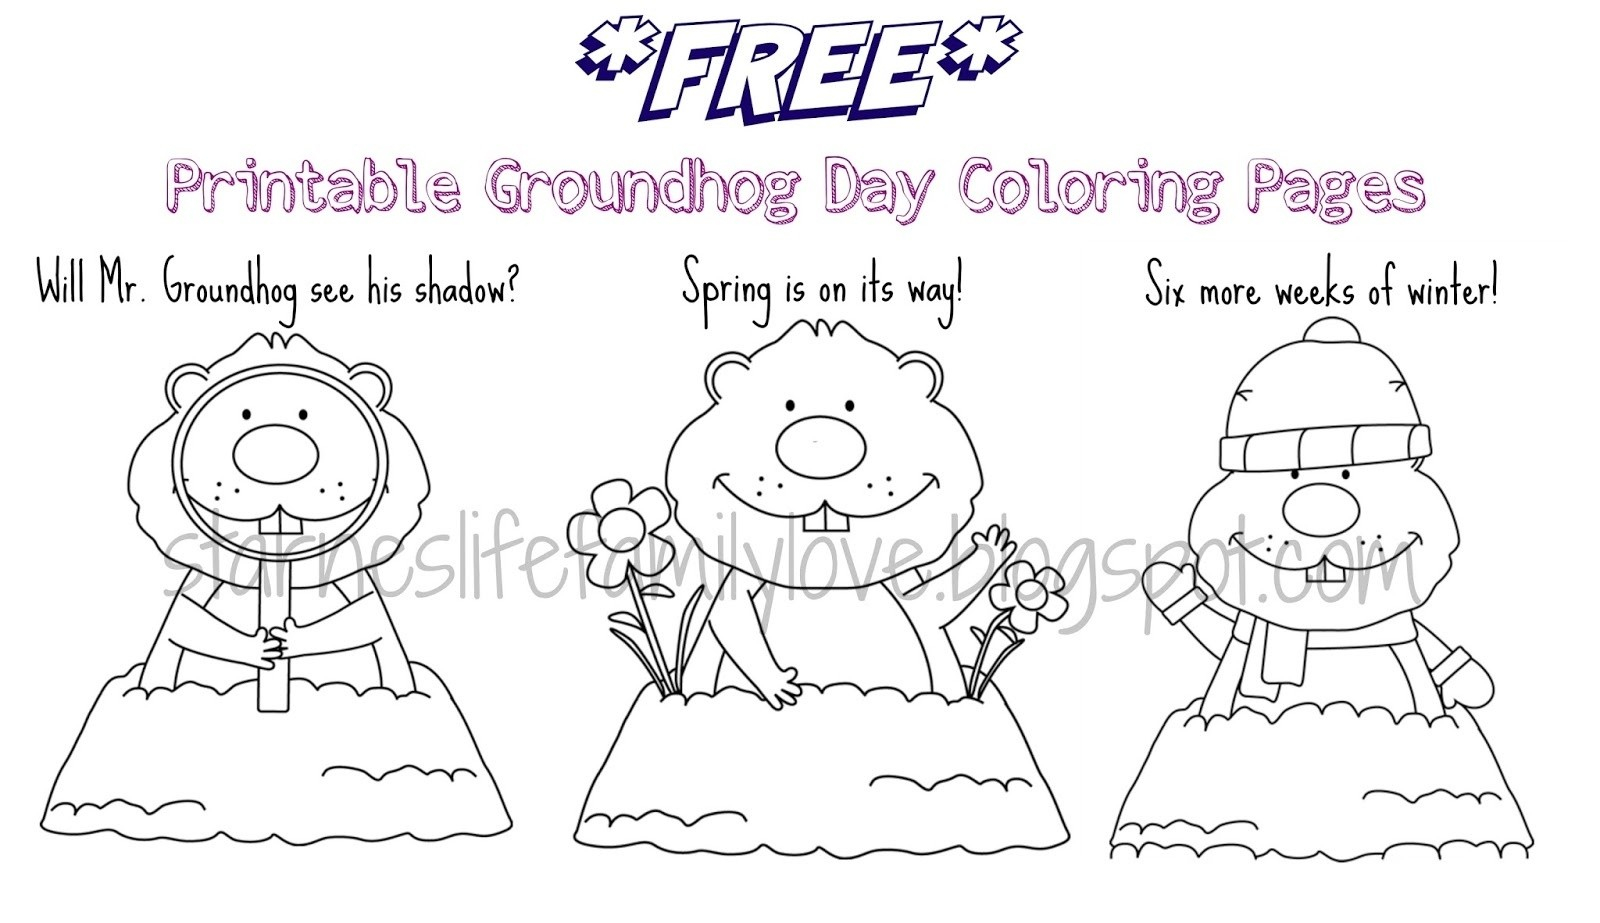 Groundhog Day Printable Coloring Pages Coloring Coloringhog Day Pages New Free Printable Beauteous Page